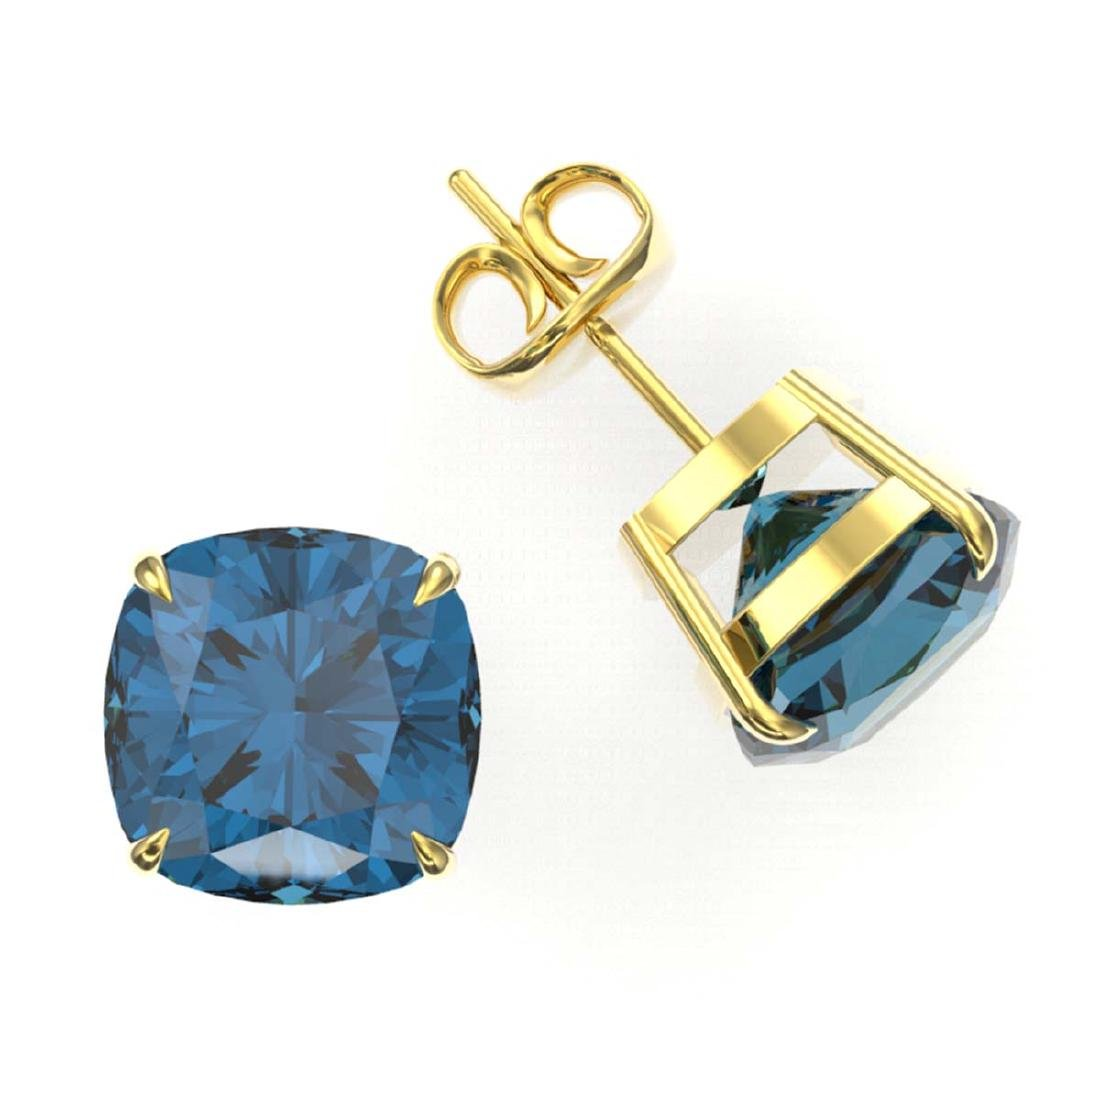 12 ctw Cushion London Blue Topaz Stud Earrings 18K - 2